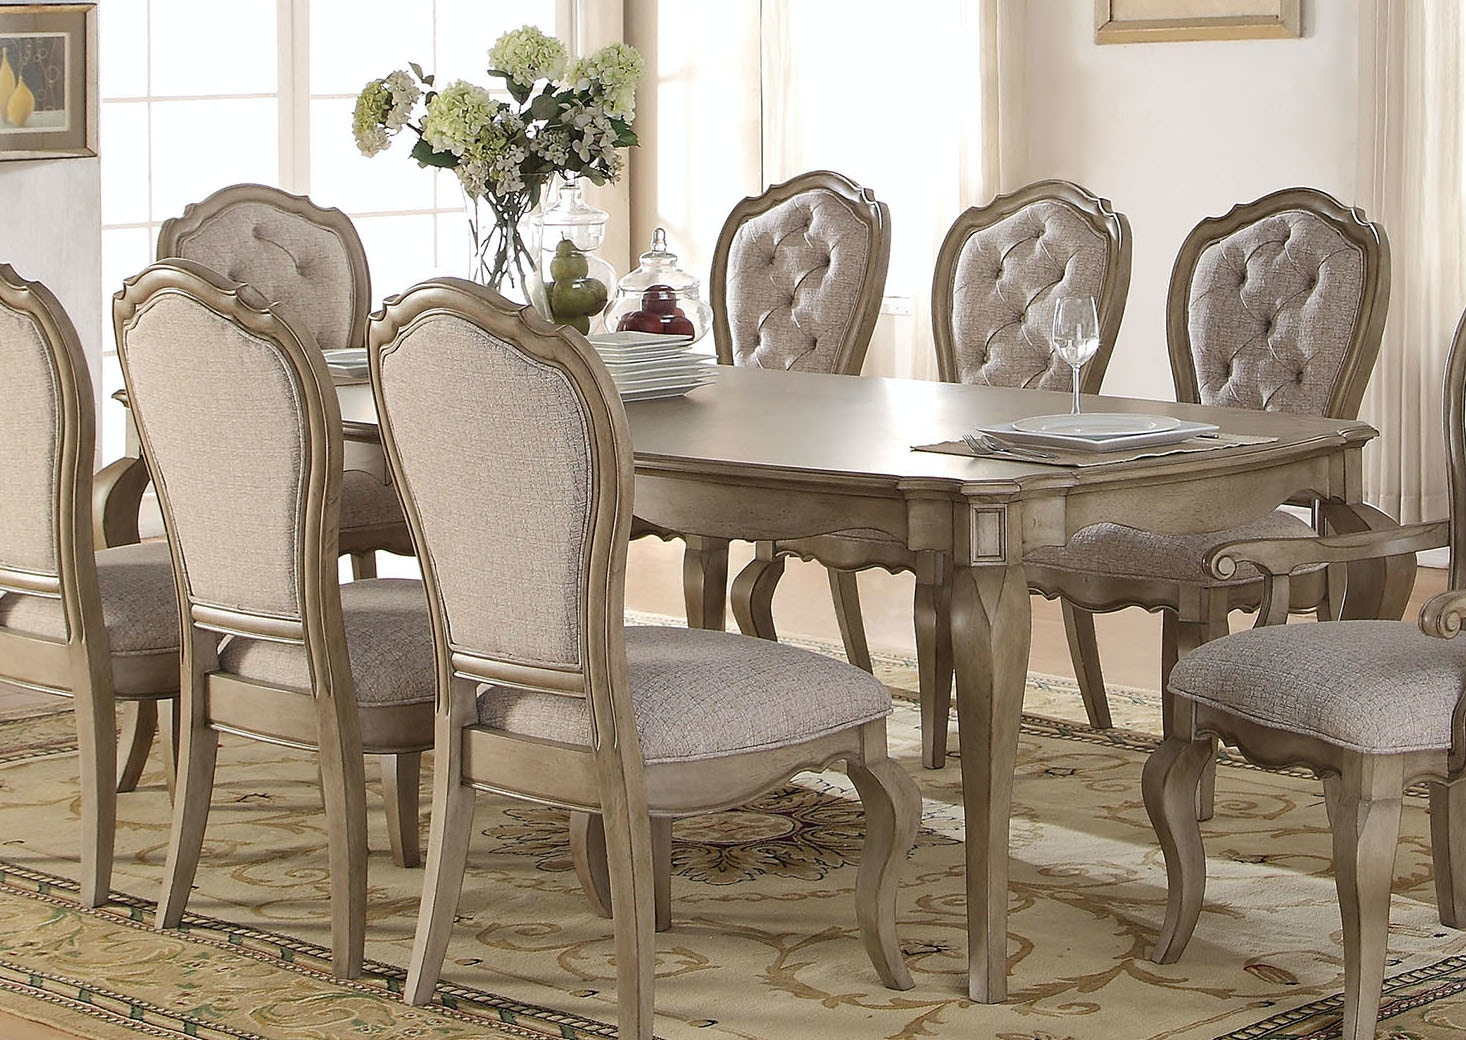 Charming Acme Furniture Dining Room Chelmsford Dining Table 66050   Hi Desert  Furniture   Victorville, CA